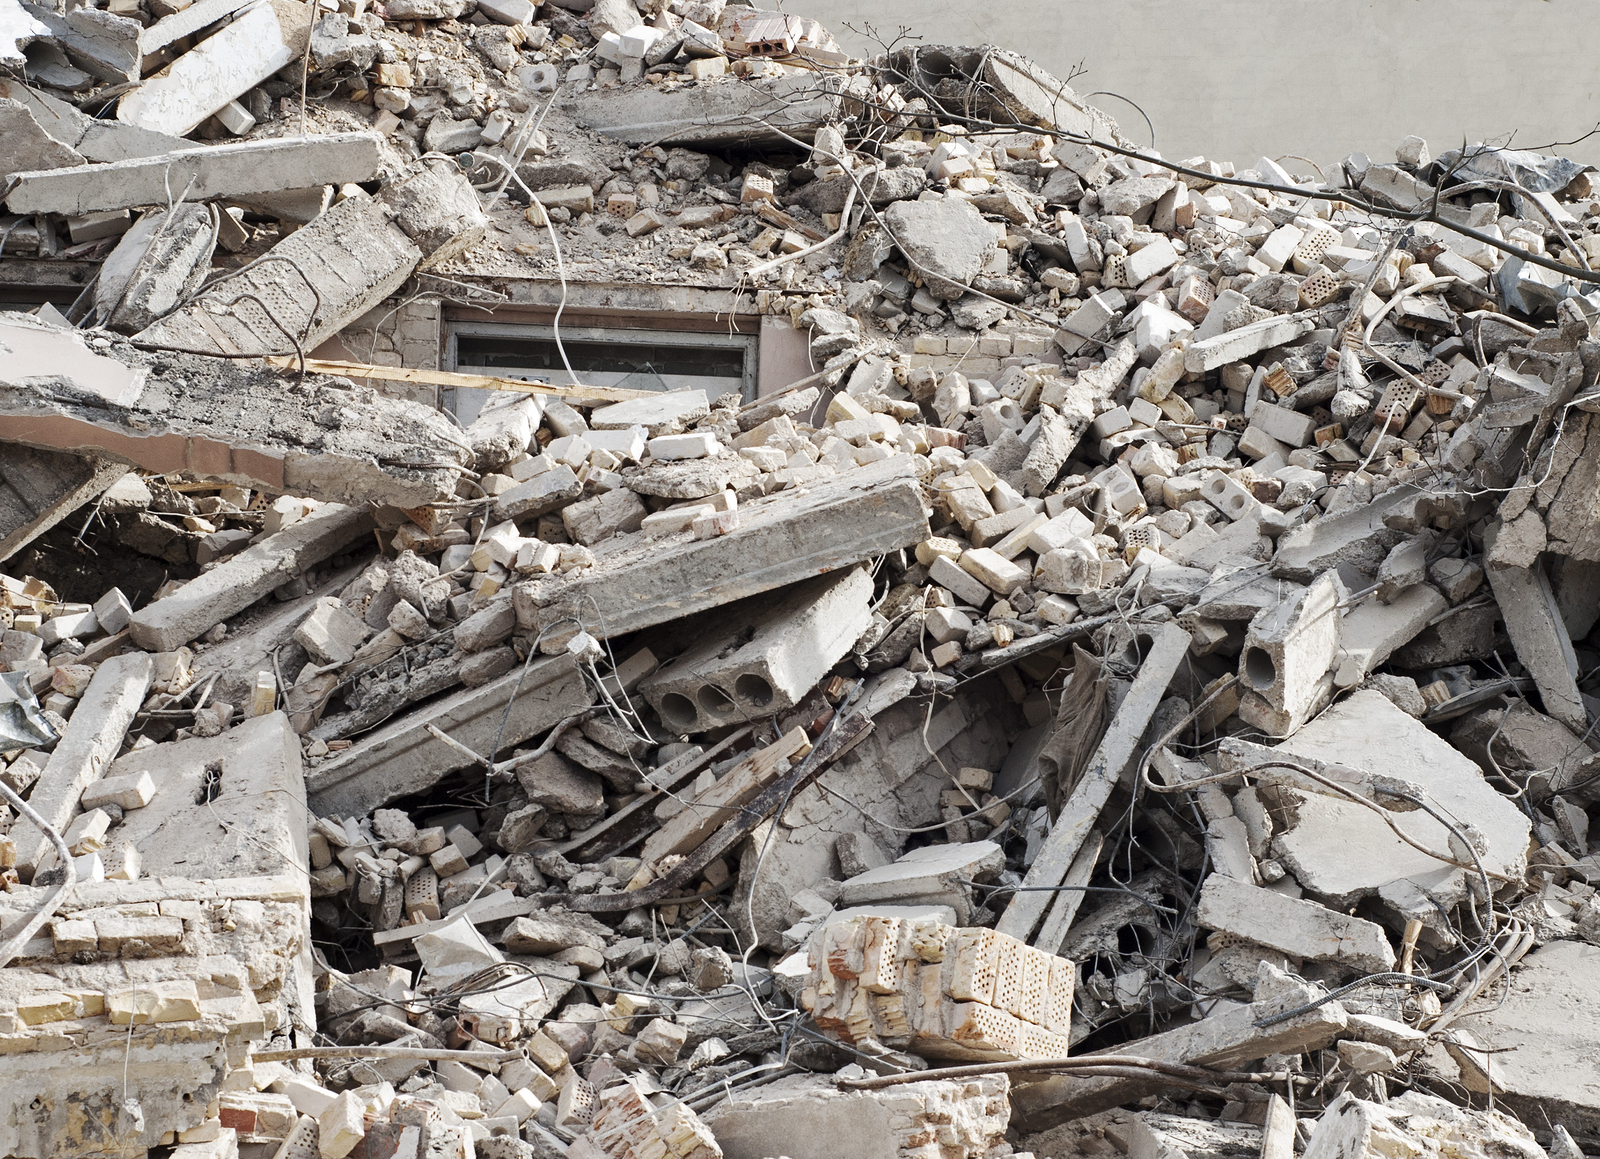 What-can-cause-debris-to-fall-on-a-construction-site.jpg